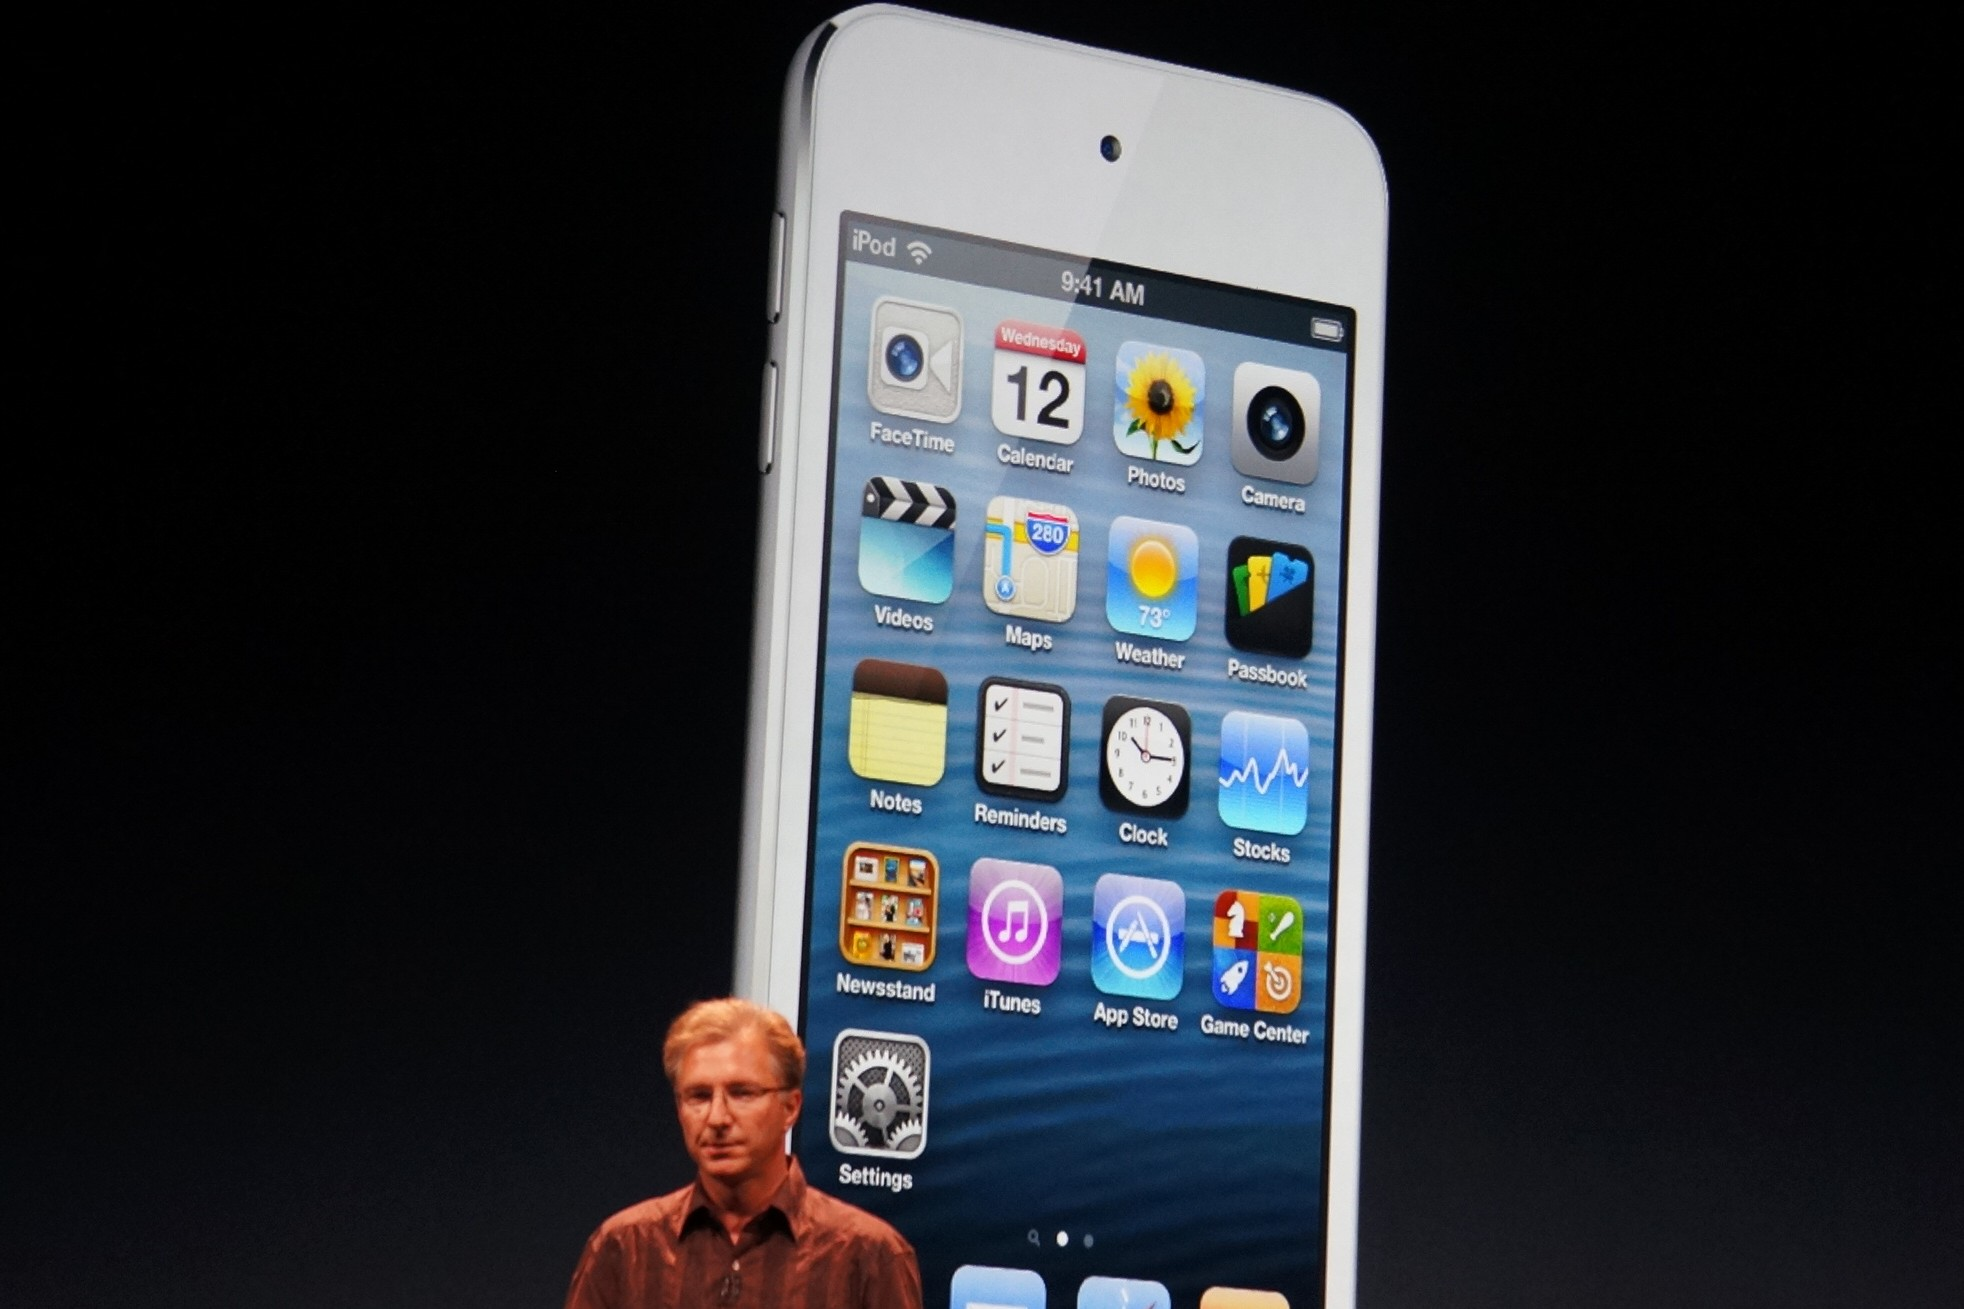 iPod touch with 4-inch display